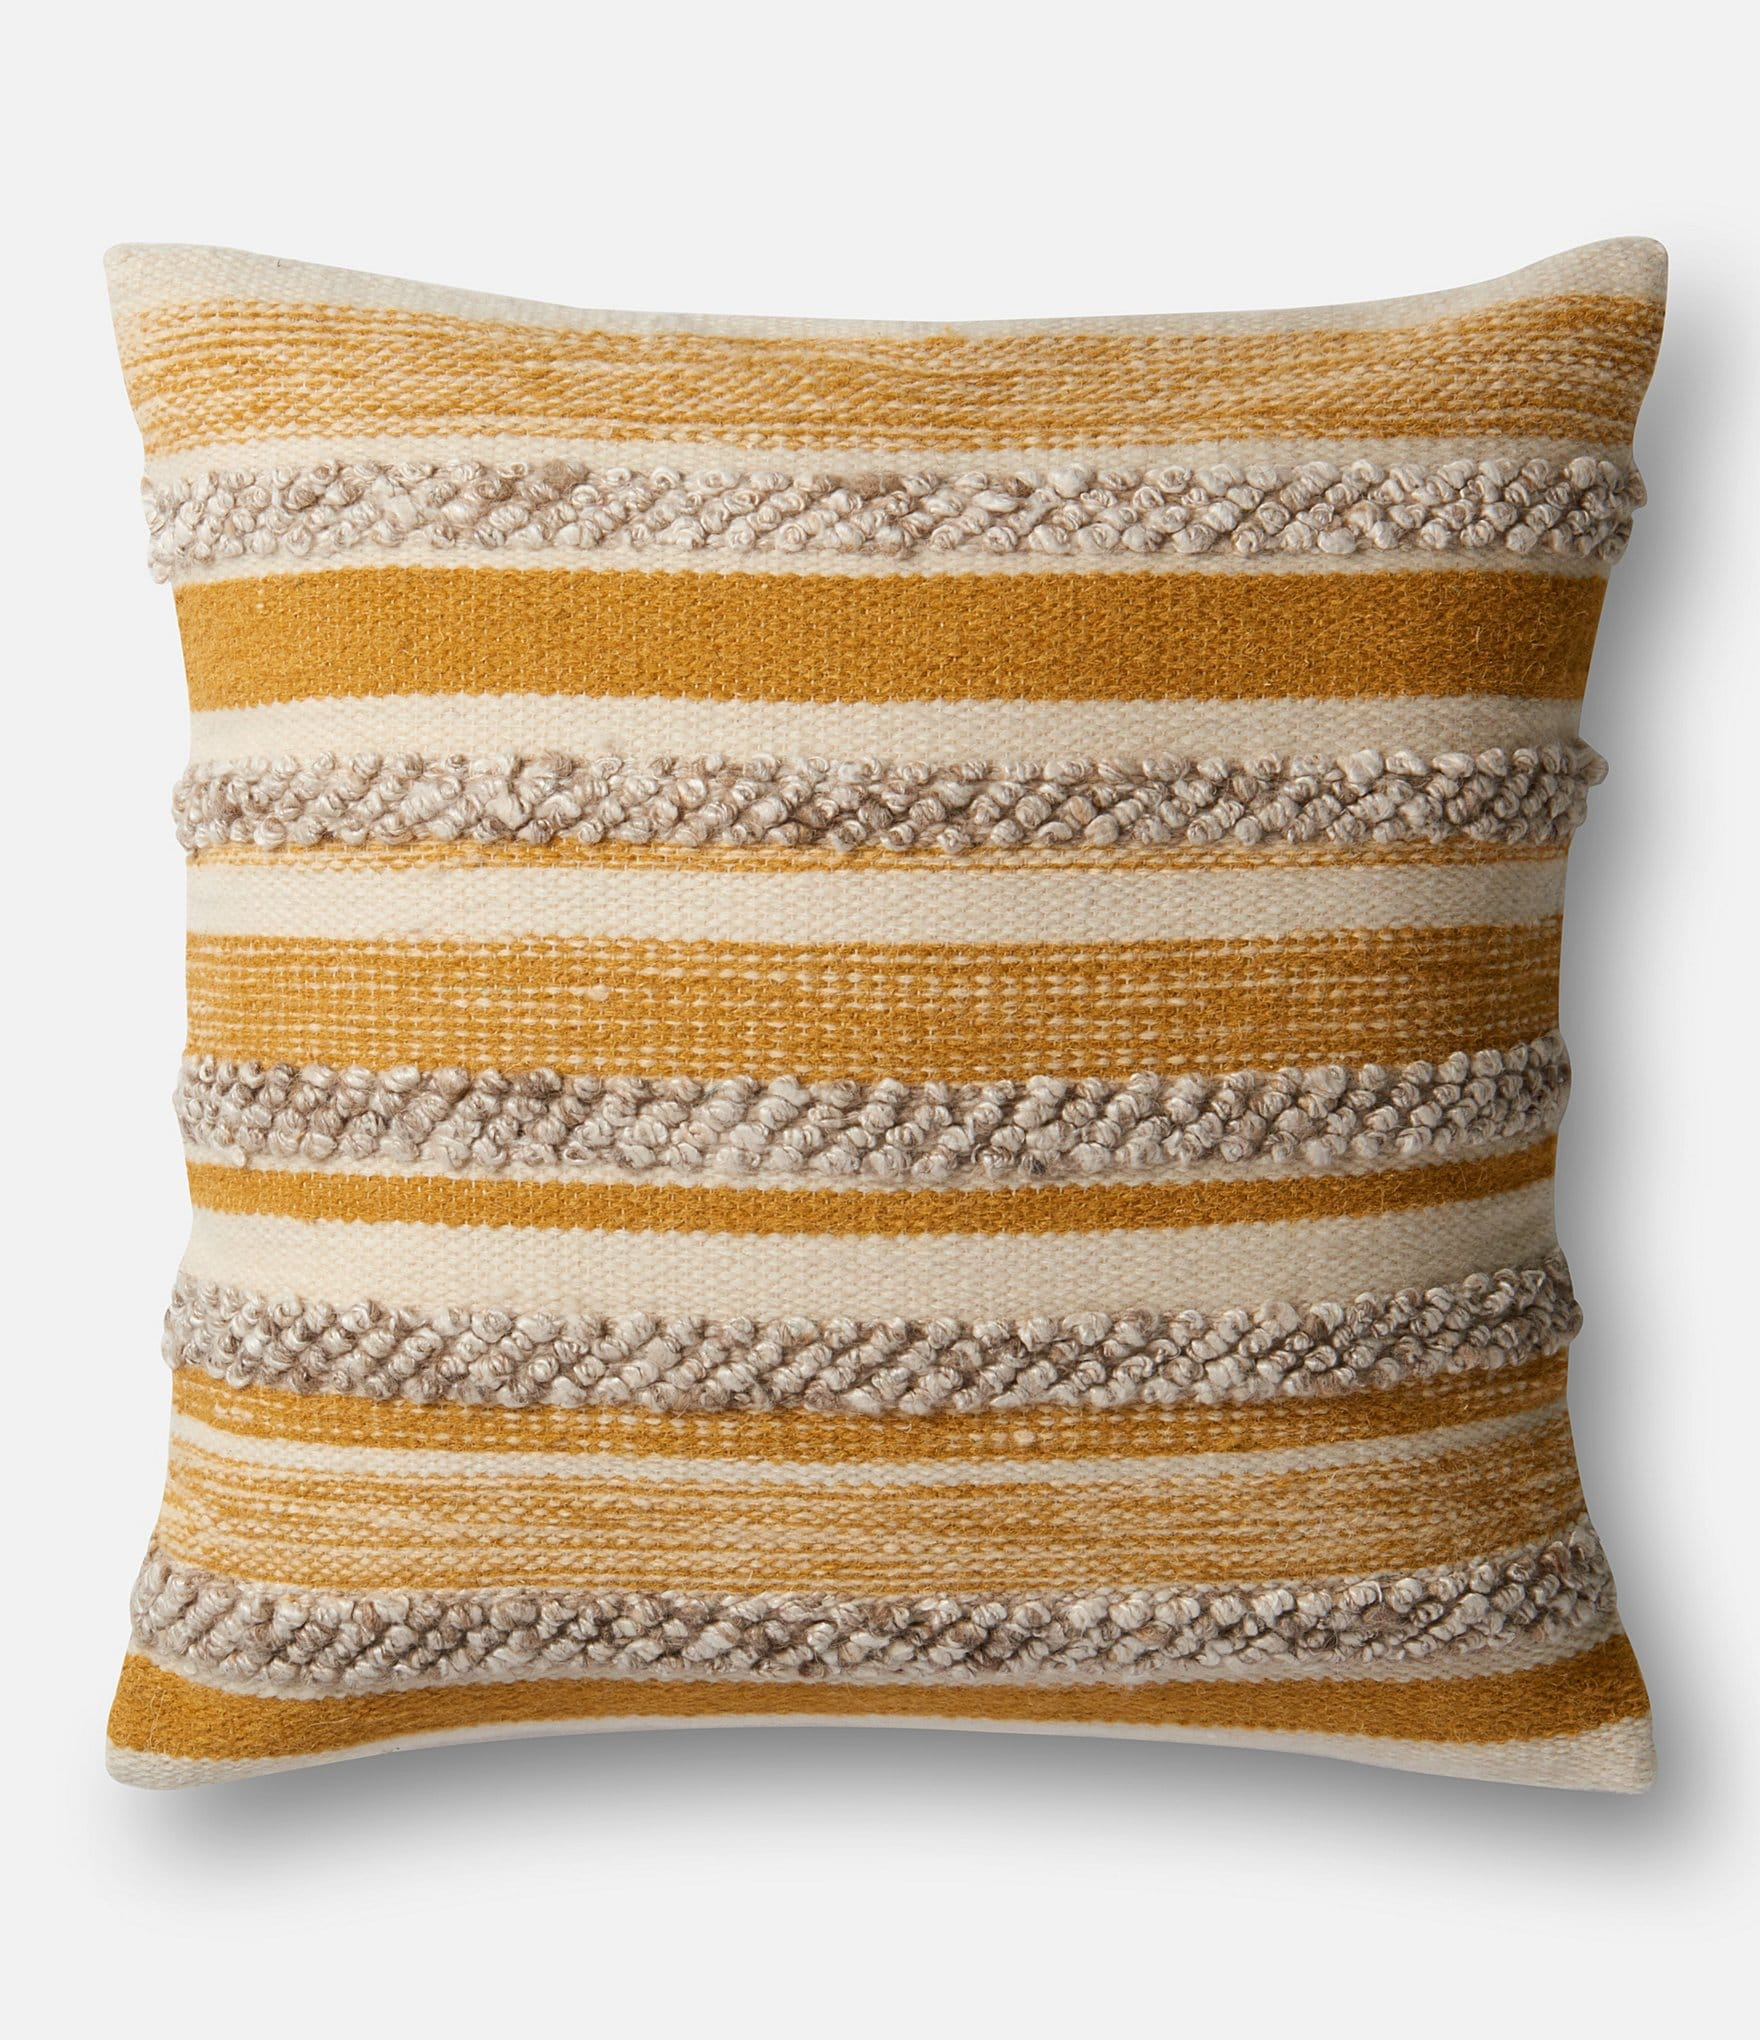 Home Bedding Decorative Pillows